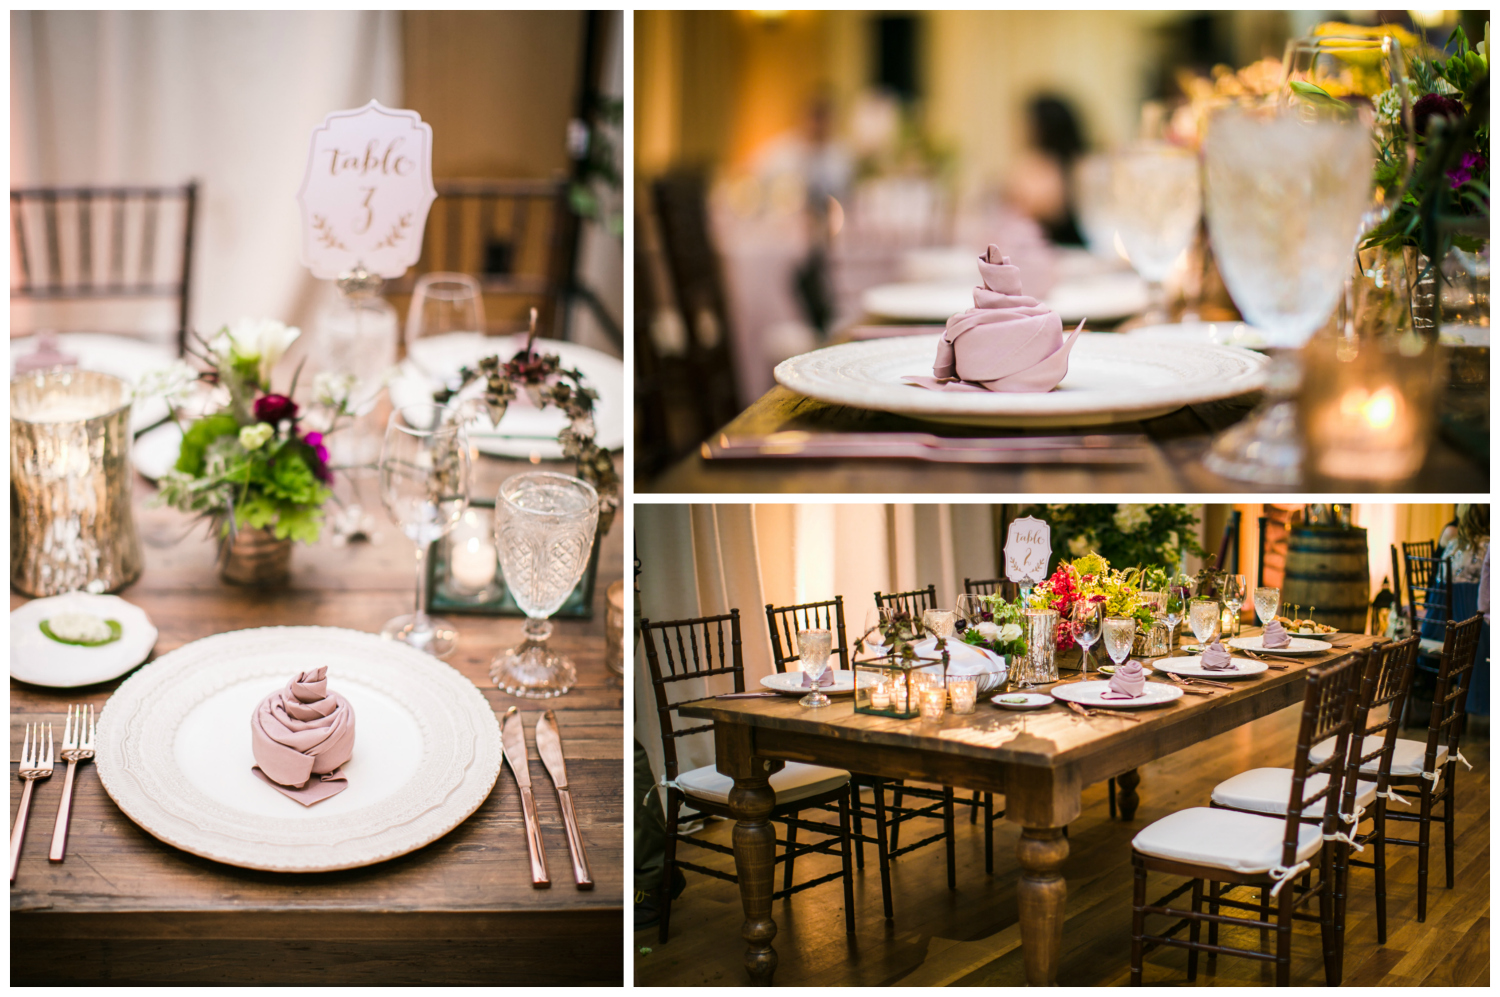 Wedding details at Highlands Ranch Mansion.    hotographed by JMGant Photography, Denver Colorado wedding photographer.